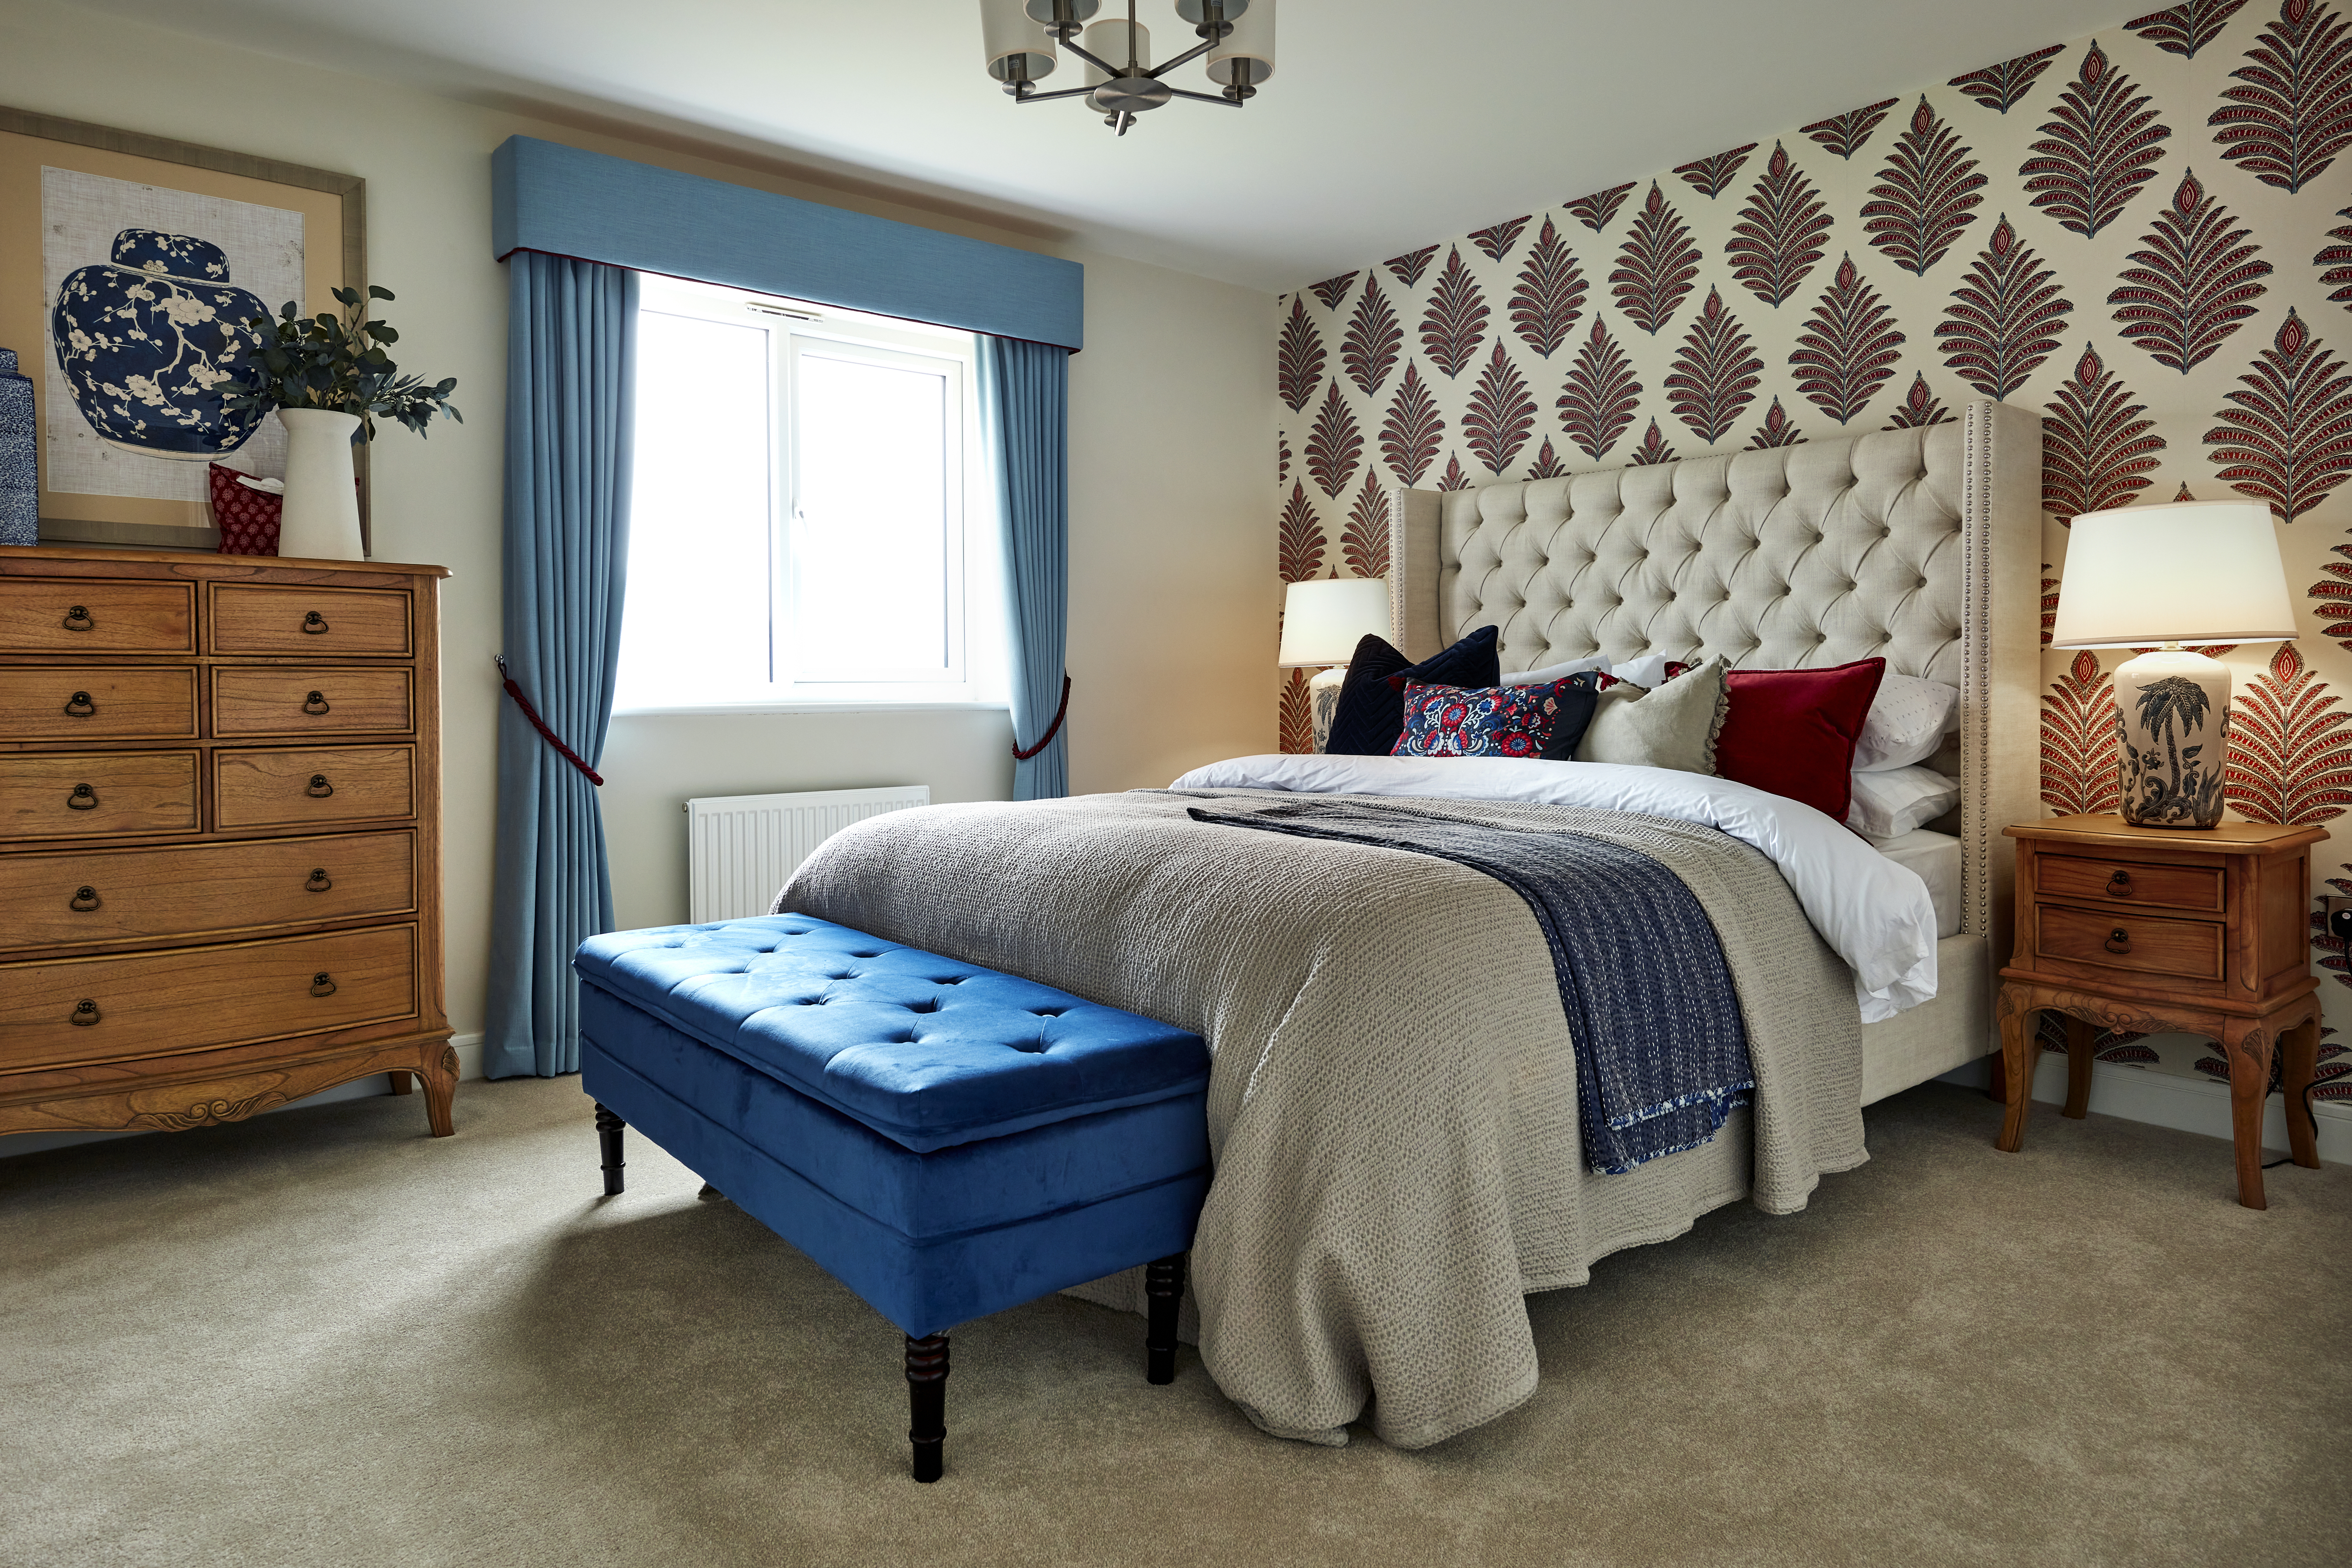 TW Mids Tudor Gate_Stratford upon Avon_NA46_Ransford_Master Bedroom